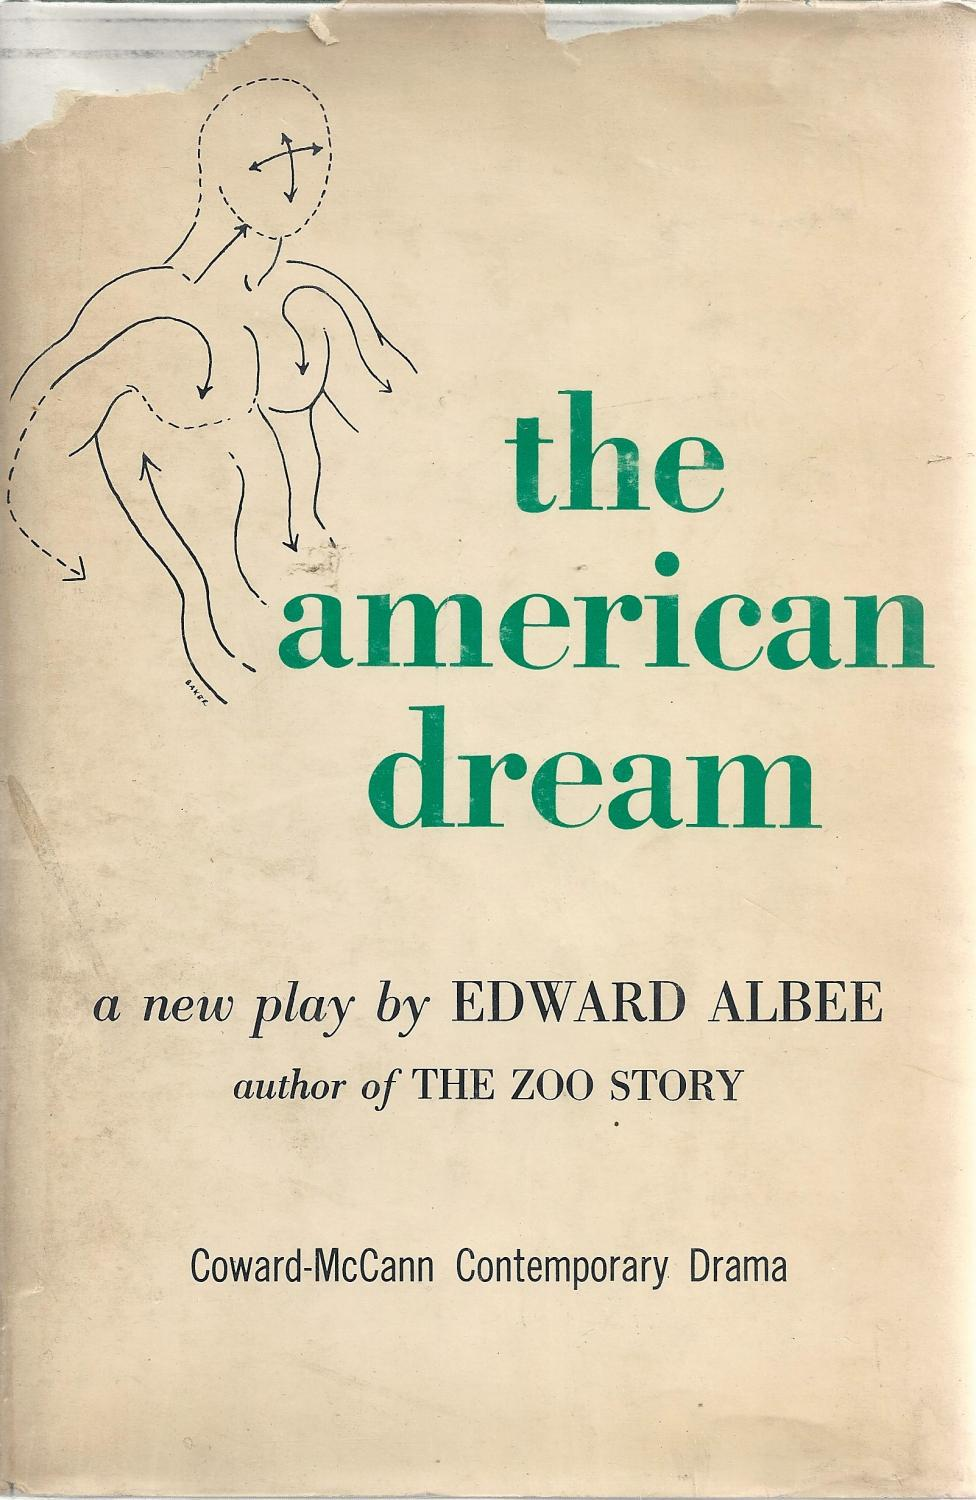 the american dream edward albee - the american dream edward albee wilderness survival skills wisconsin survival skills uwa if there are any patients at home, get some extra medical supplies which final a few more one month this prevents any other disaster which could happen at home.